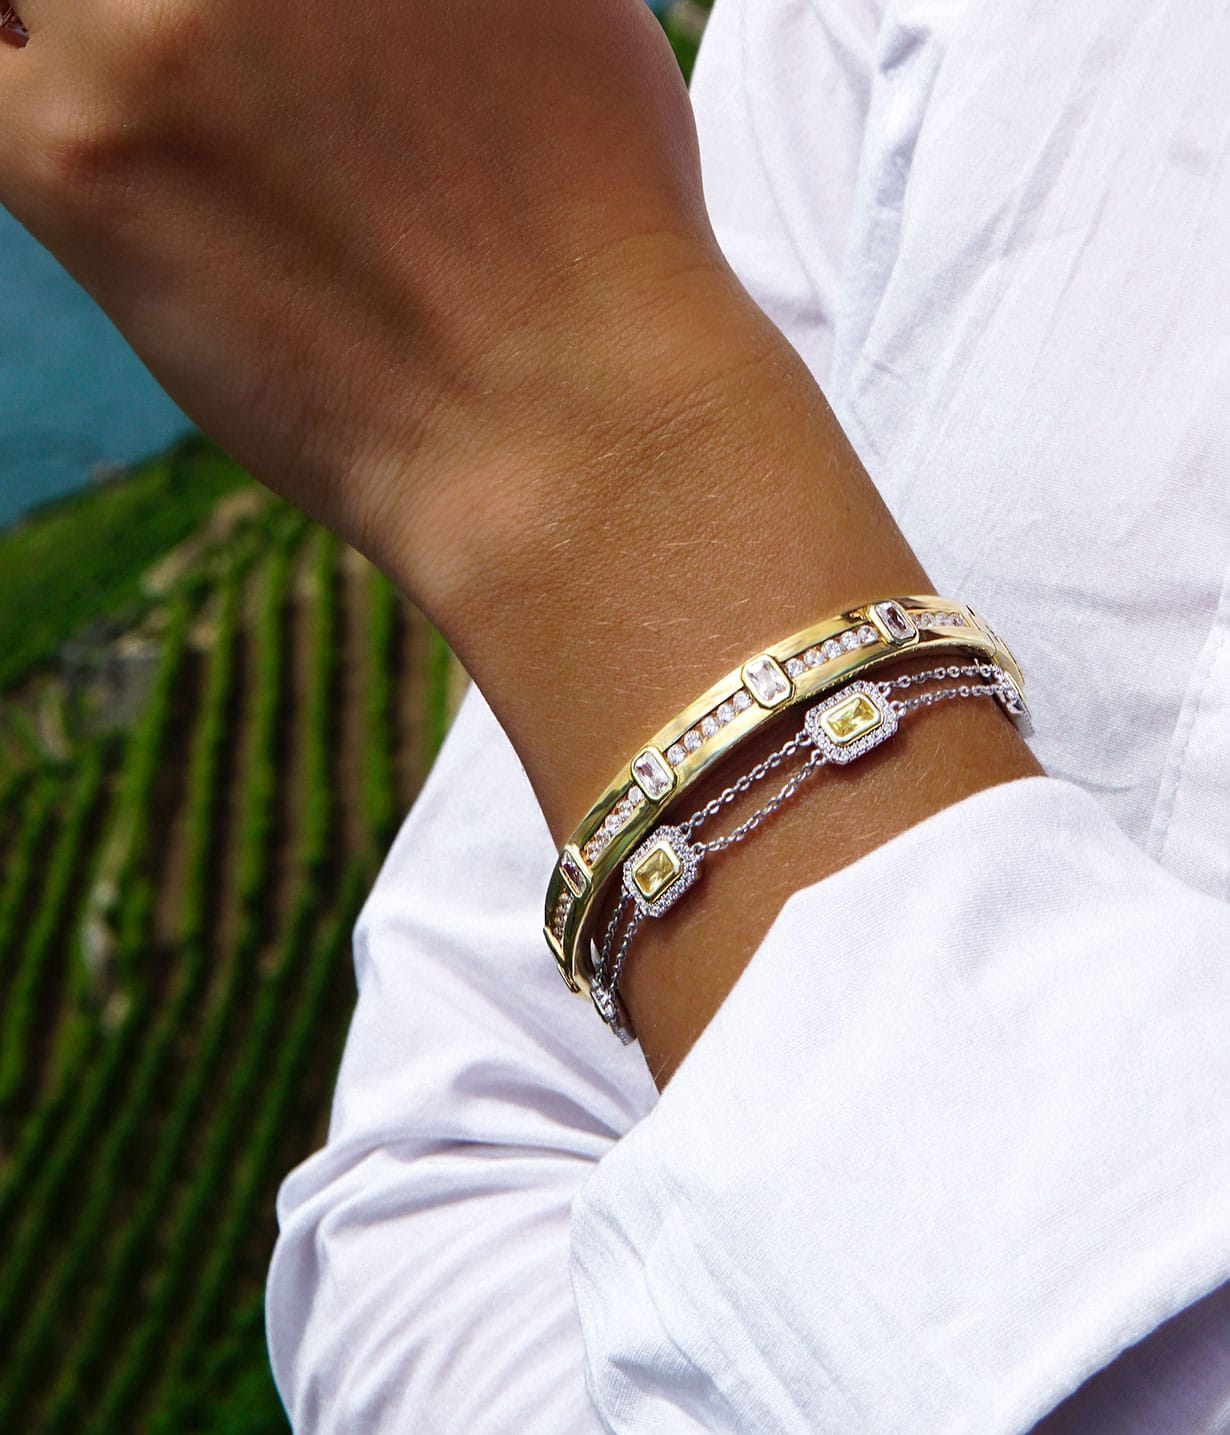 Abelstedt A bracelets in gold plated sterling silver